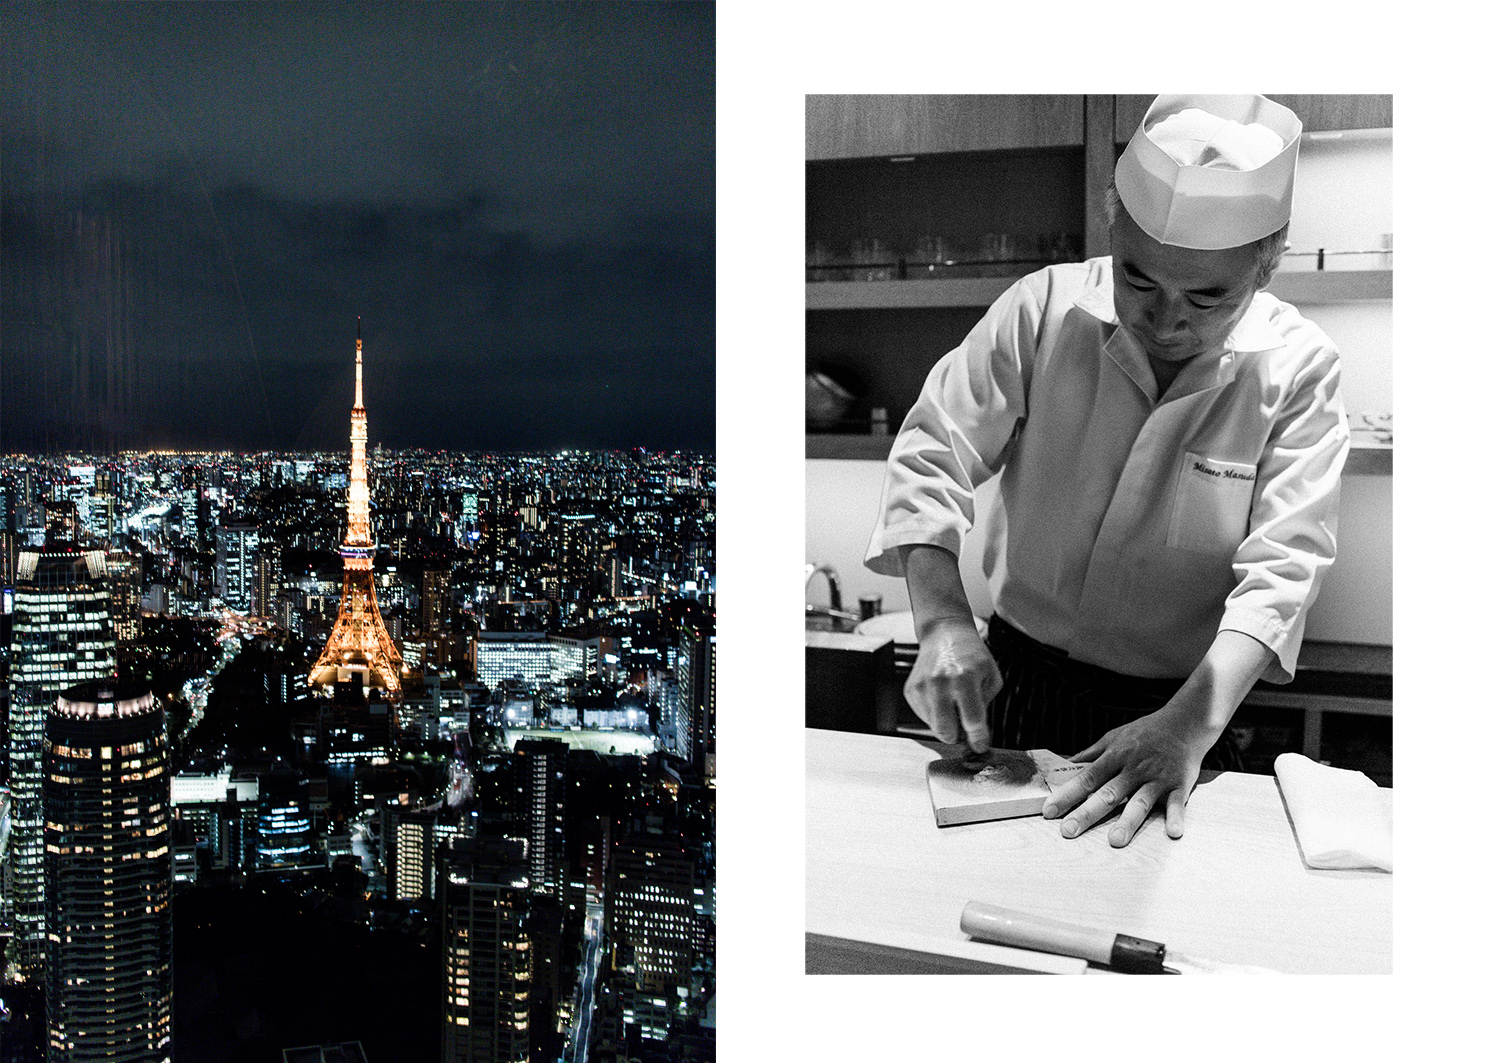 Andaz Tokyo Restaurant – The Sushi